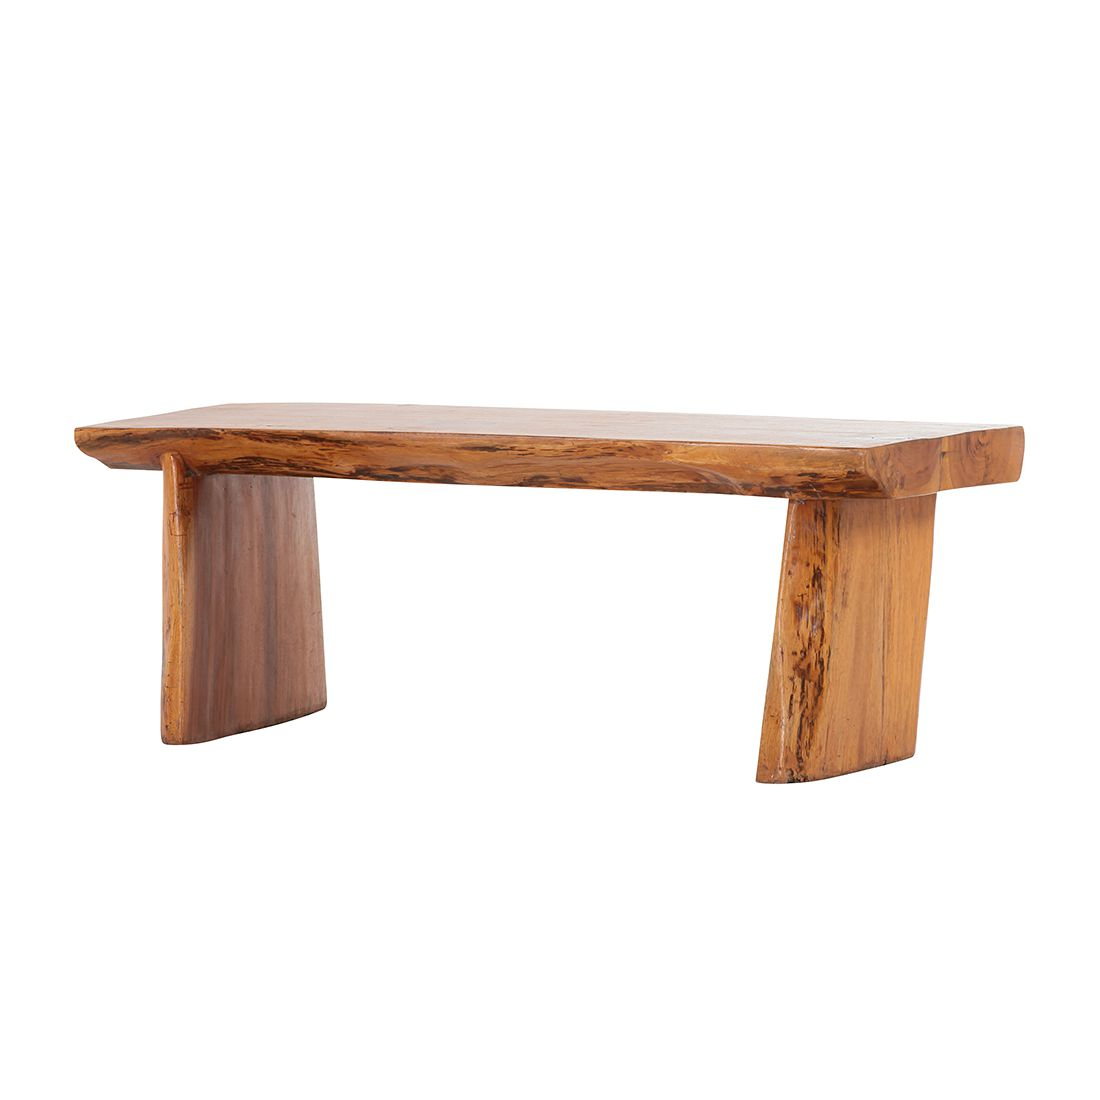 Table basse Tenby - Suar massif, ars manufacti